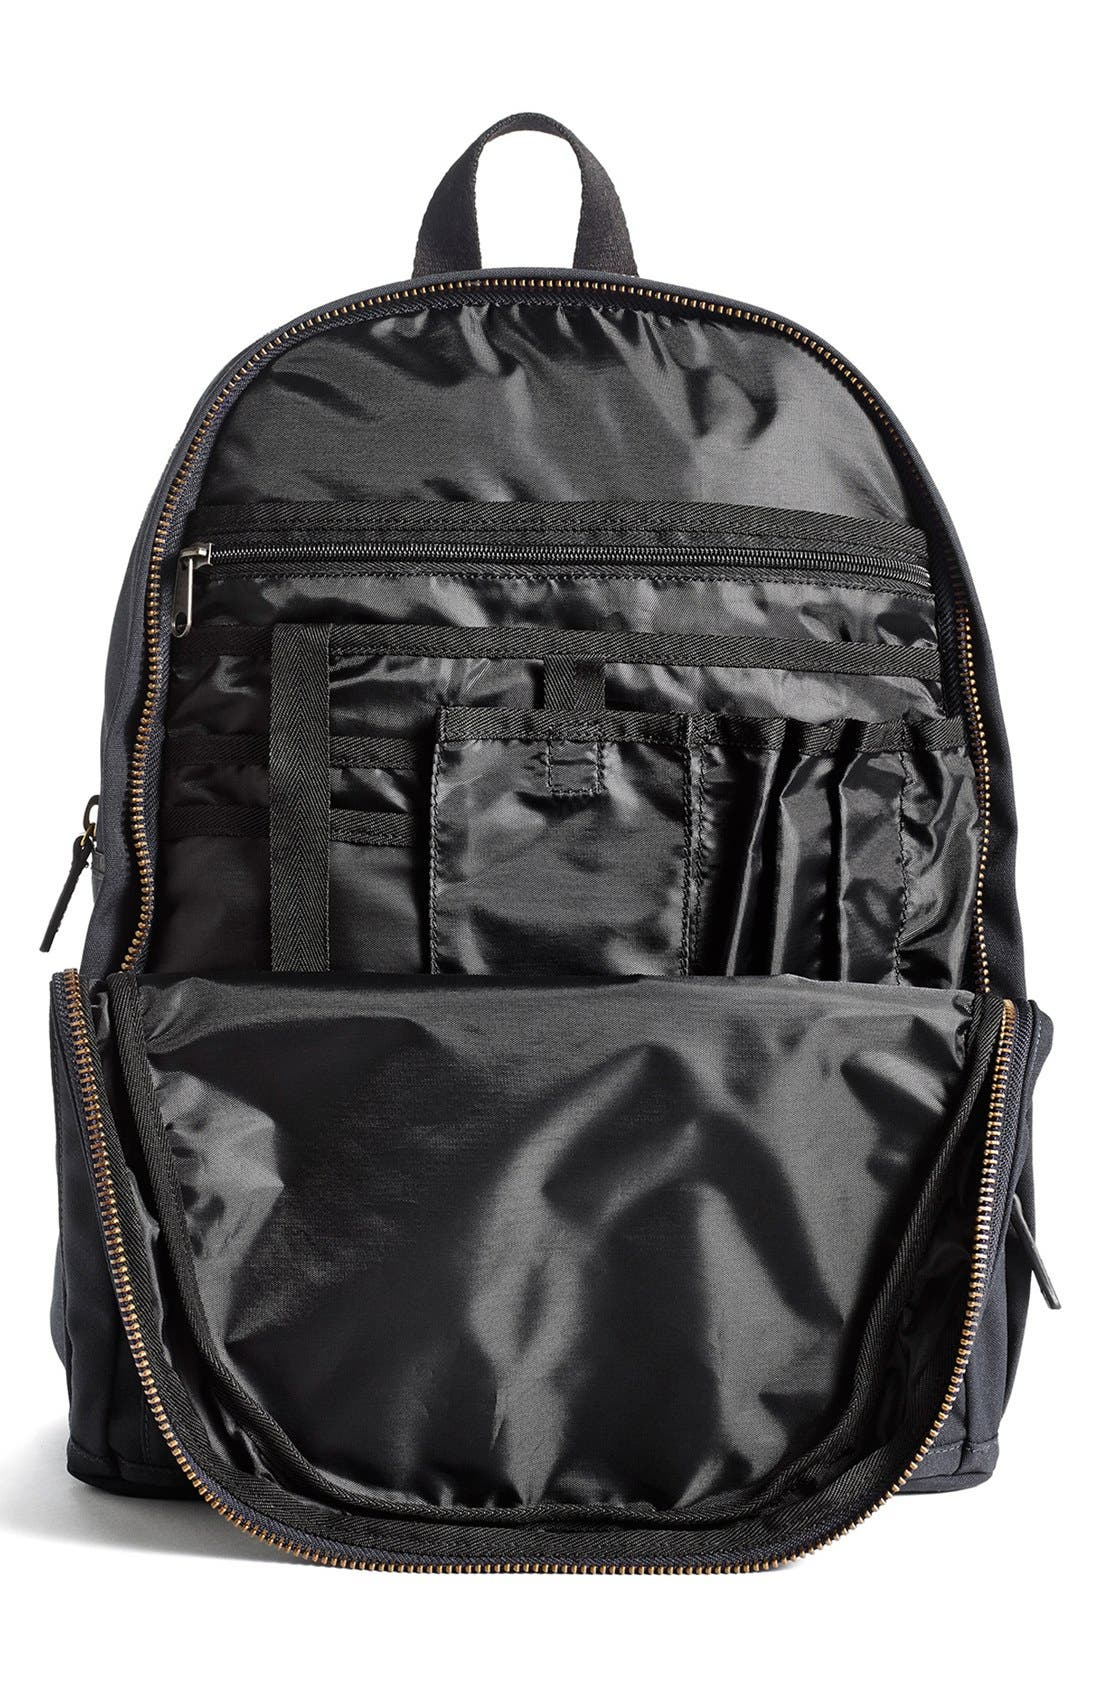 'Union' Water Resistant Backpack with Leather Trim,                             Alternate thumbnail 4, color,                             001